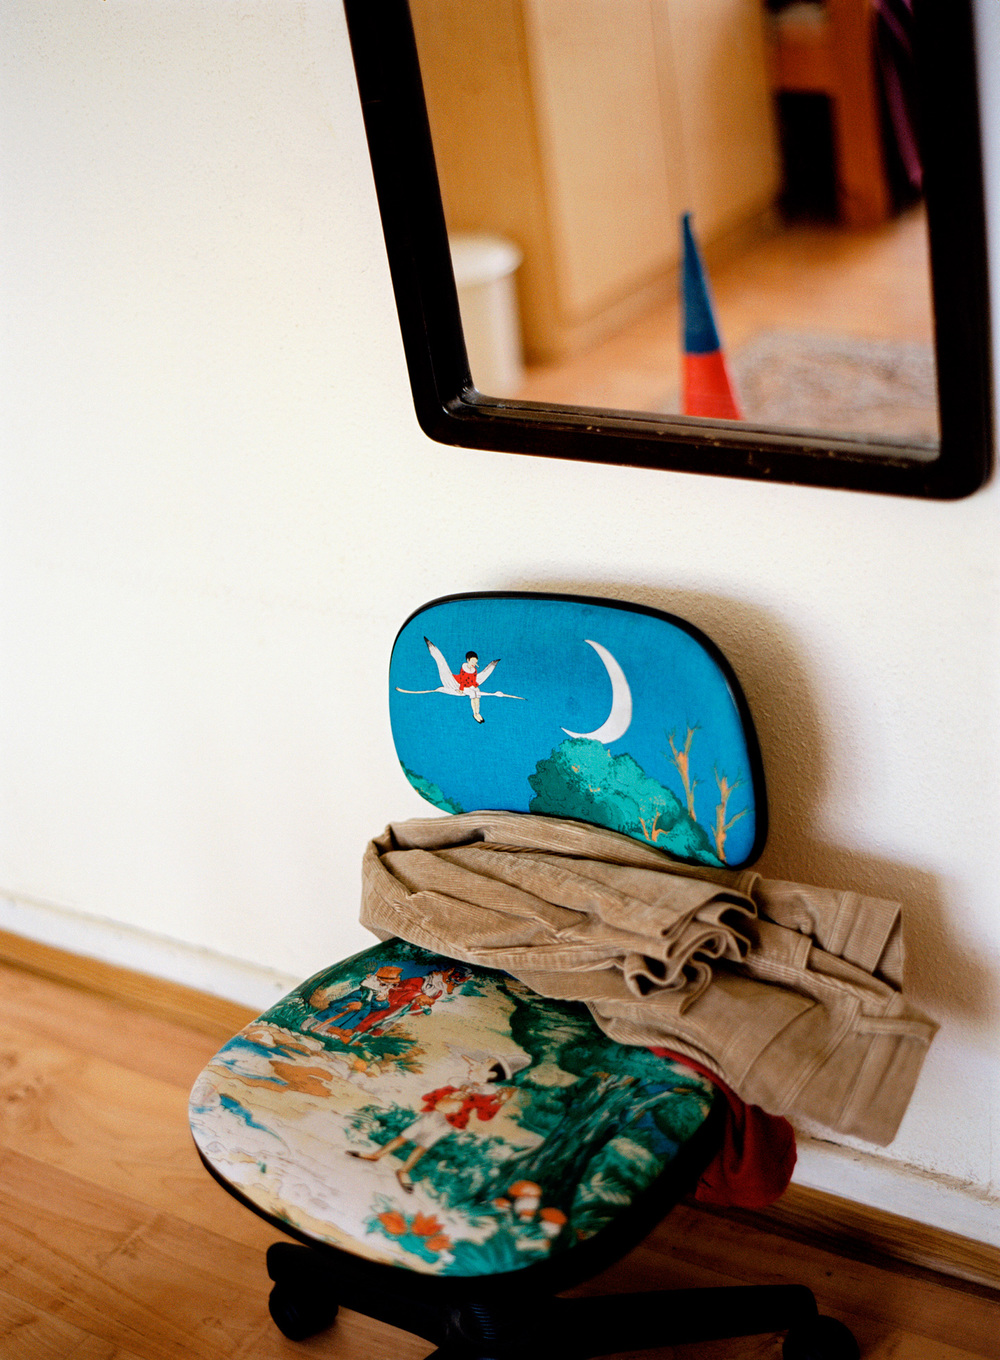 Chair with Pants, 2005